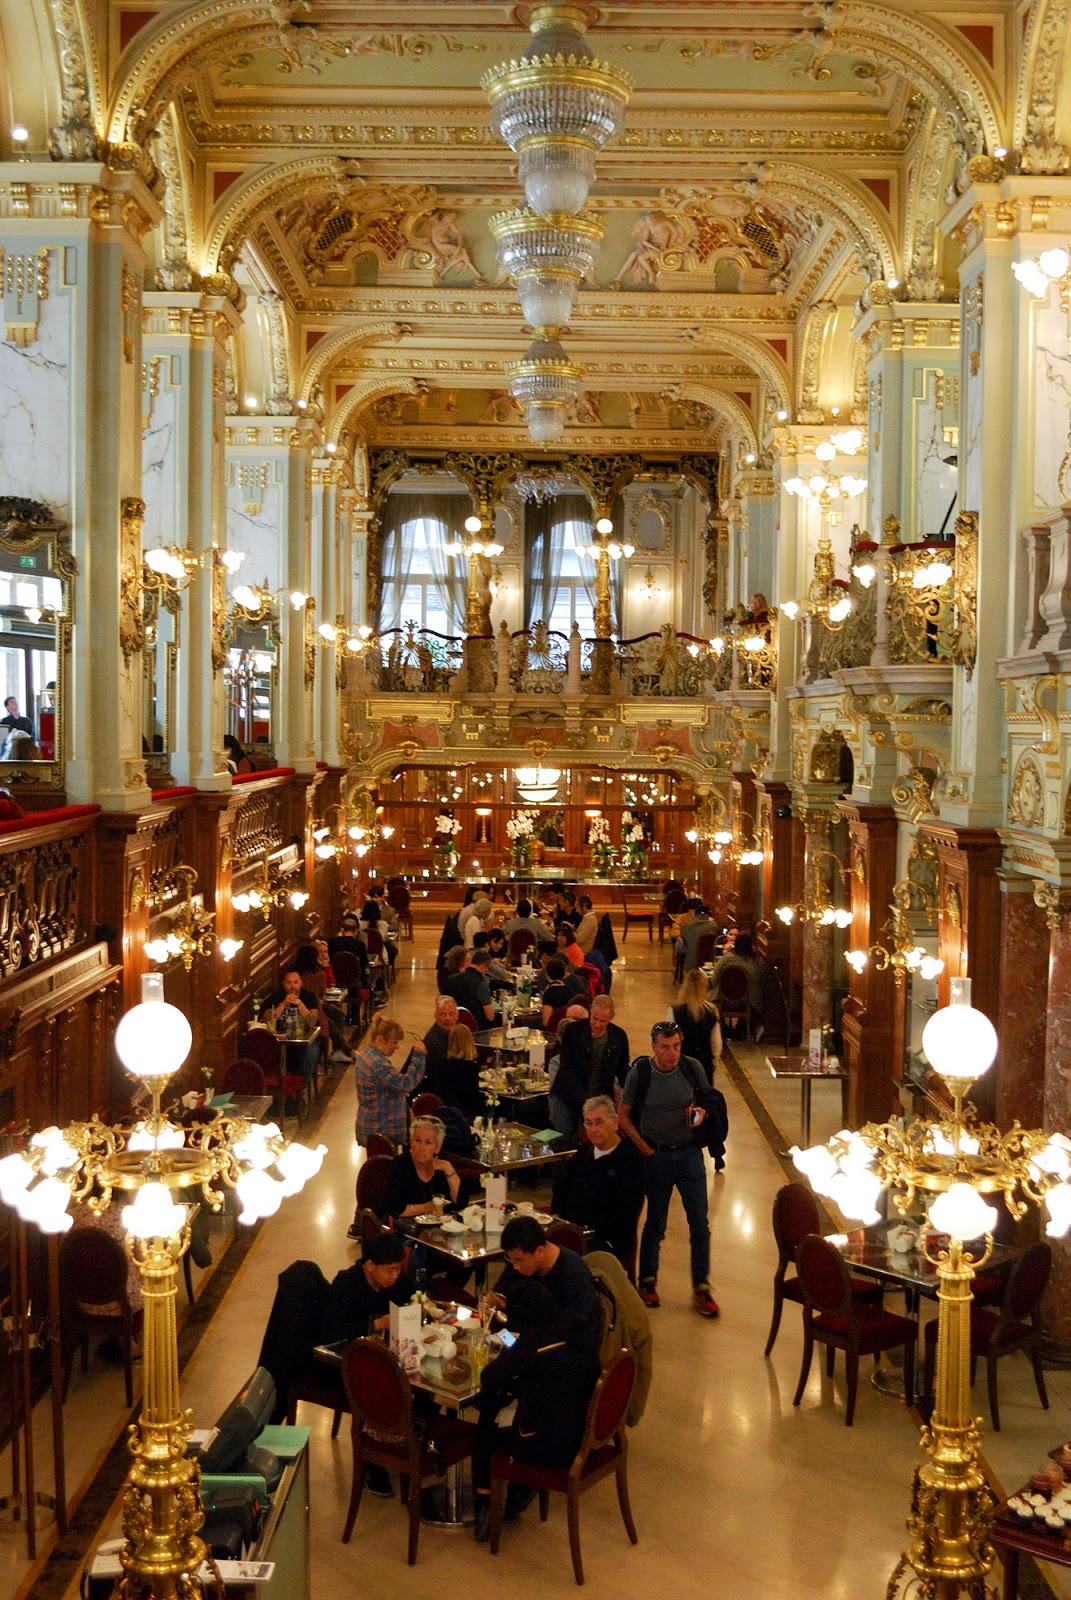 new york cafe restaurant budapest guide itinerary instagram worthy spot sights landmarks hungary